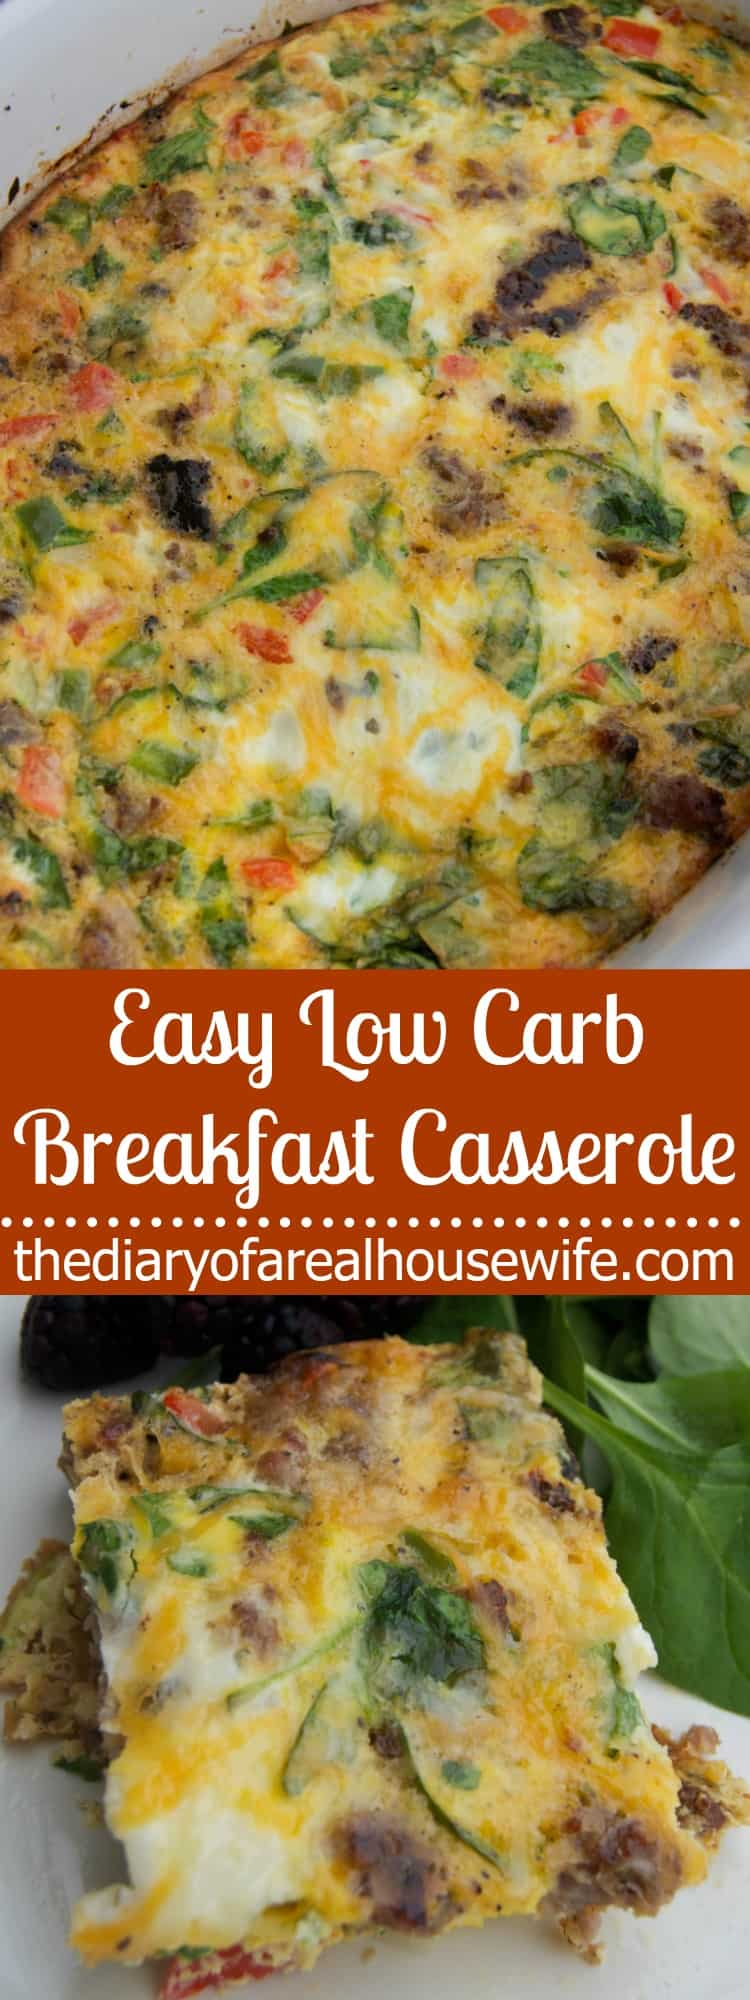 Easy Low Carb Breakfast Casserole